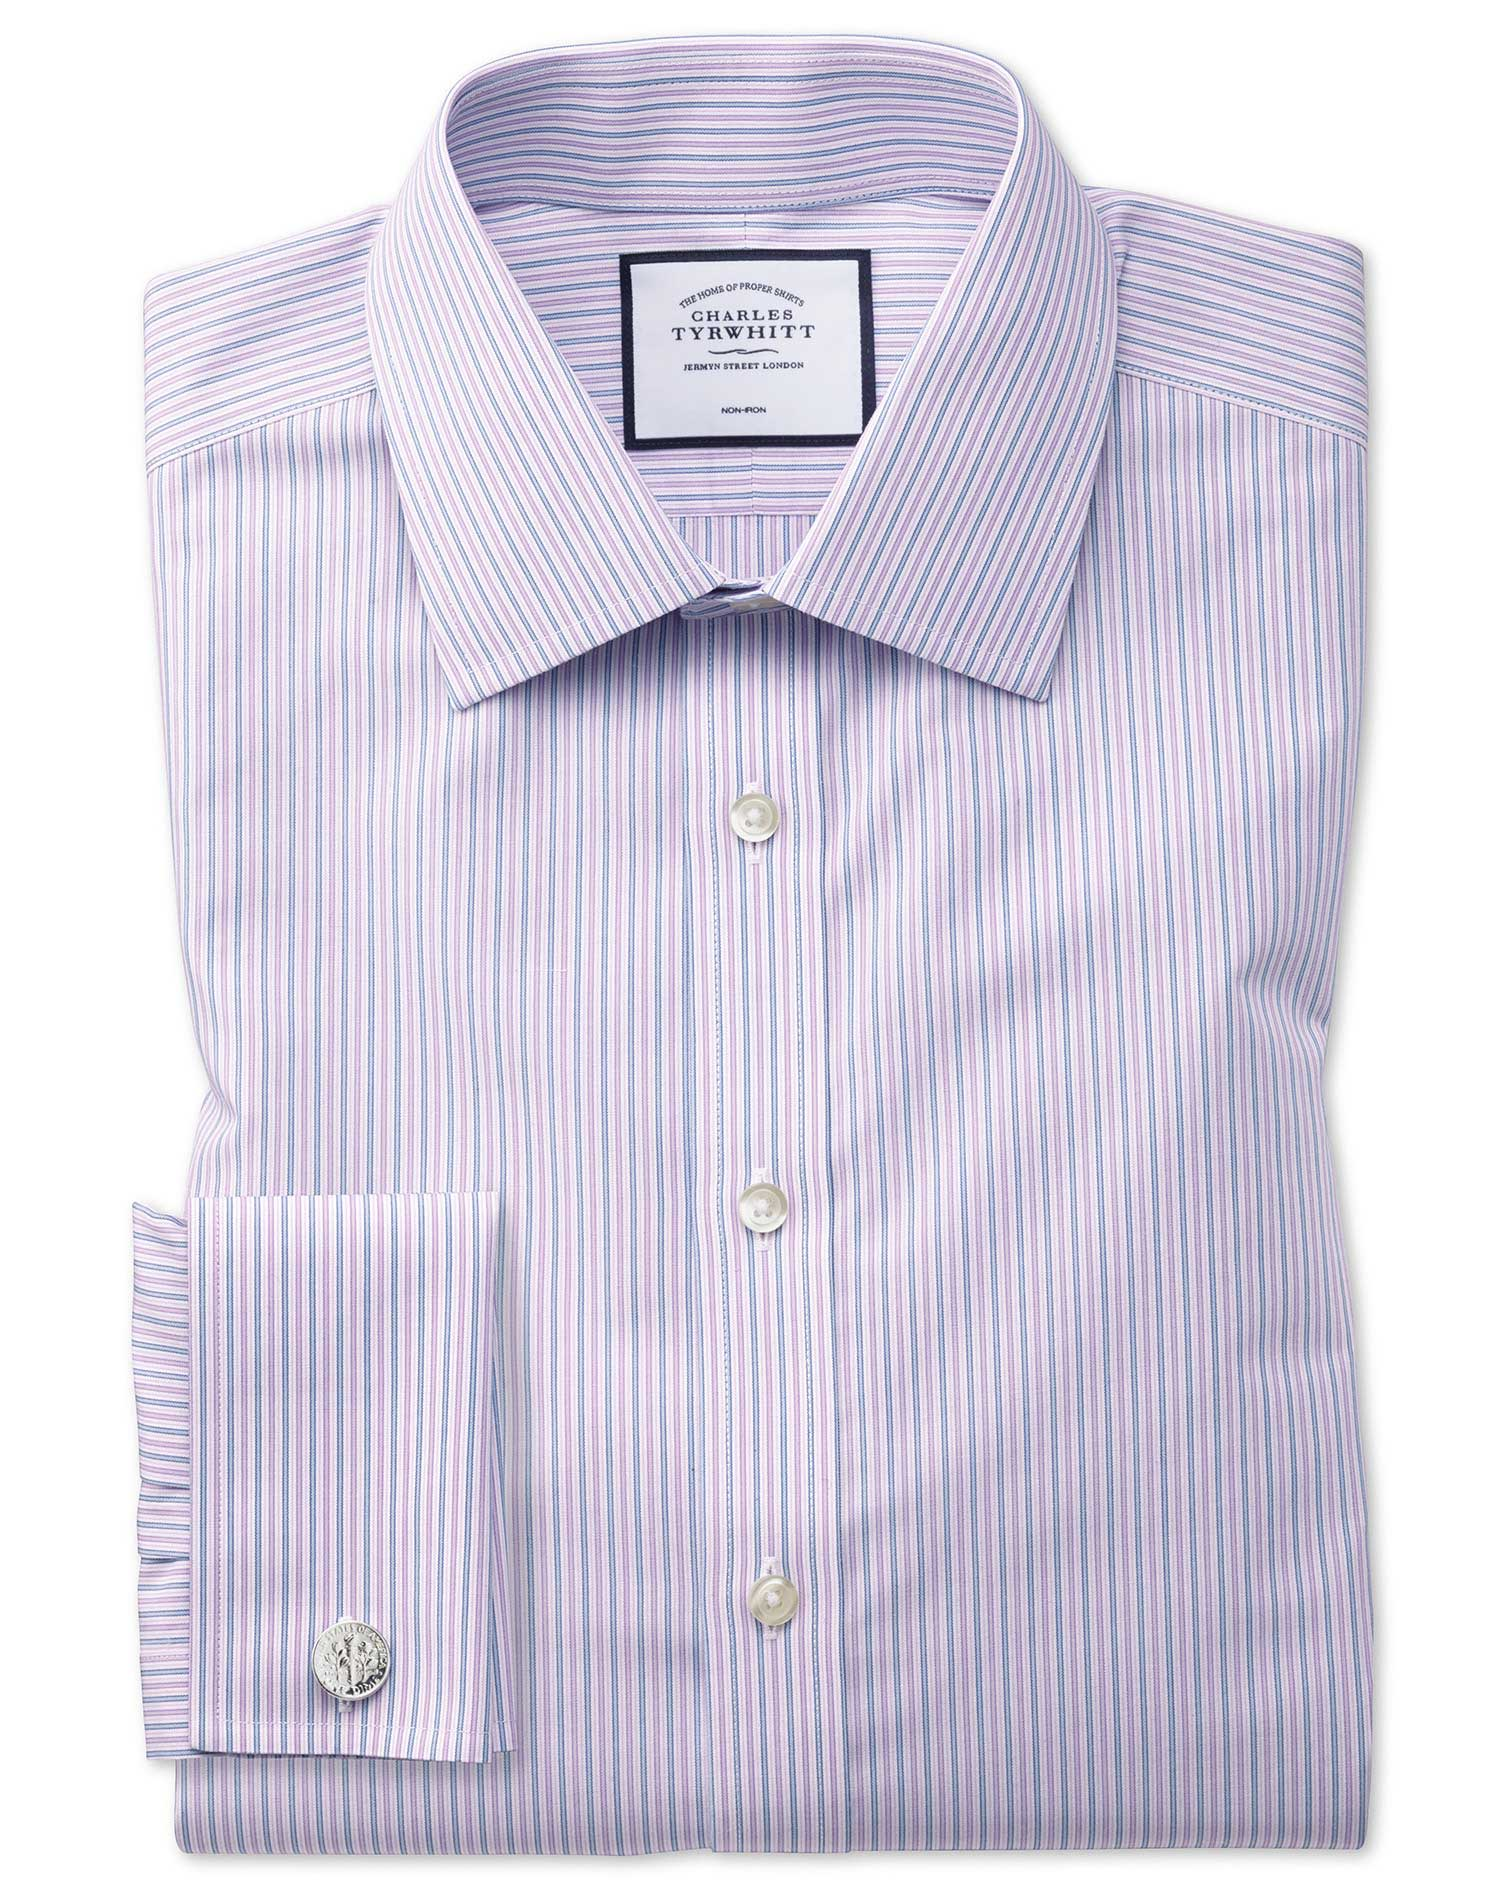 Extra Slim Fit Non-Iron Lilac and Blue Multi Stripe Cotton Formal Shirt Single Cuff Size 14.5/33 by